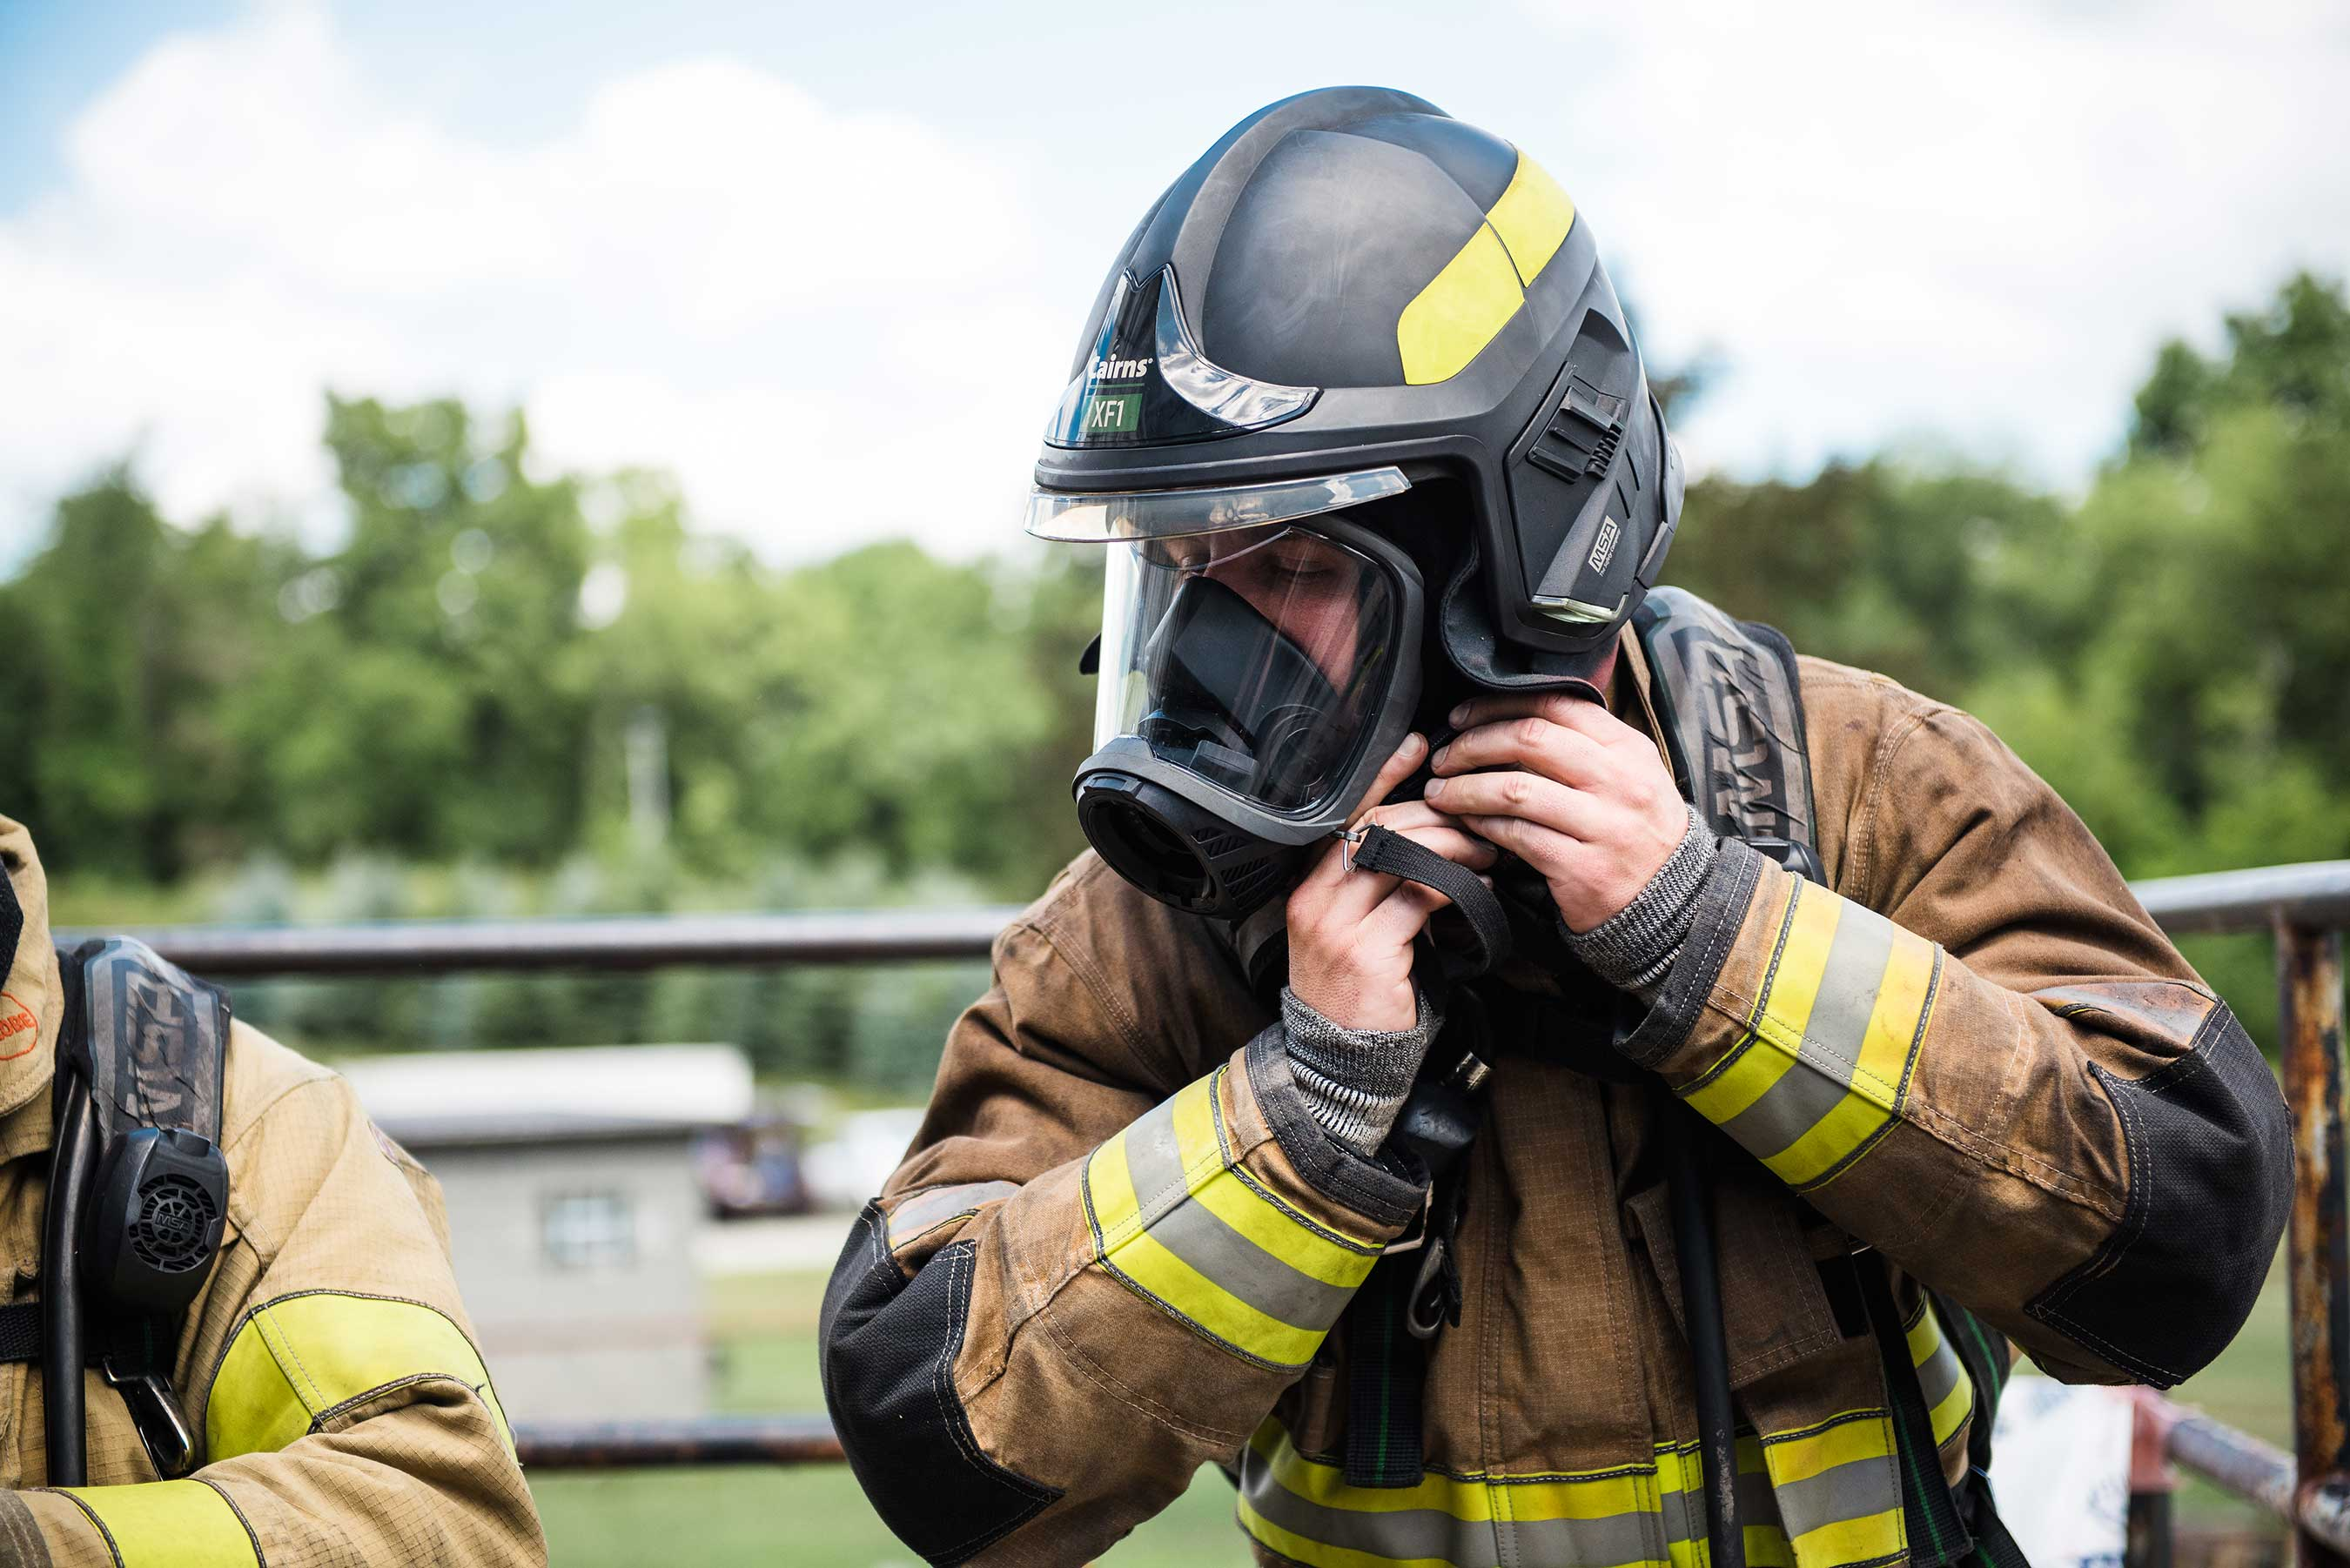 To maximize comfort, there are several easy-to-find adjustments so that the fire helmet fit can be customized to the individual. When it's all said and done, the contoured style of the XF1 doesn't just fit 99% of firefighters – it fits them comfortably.